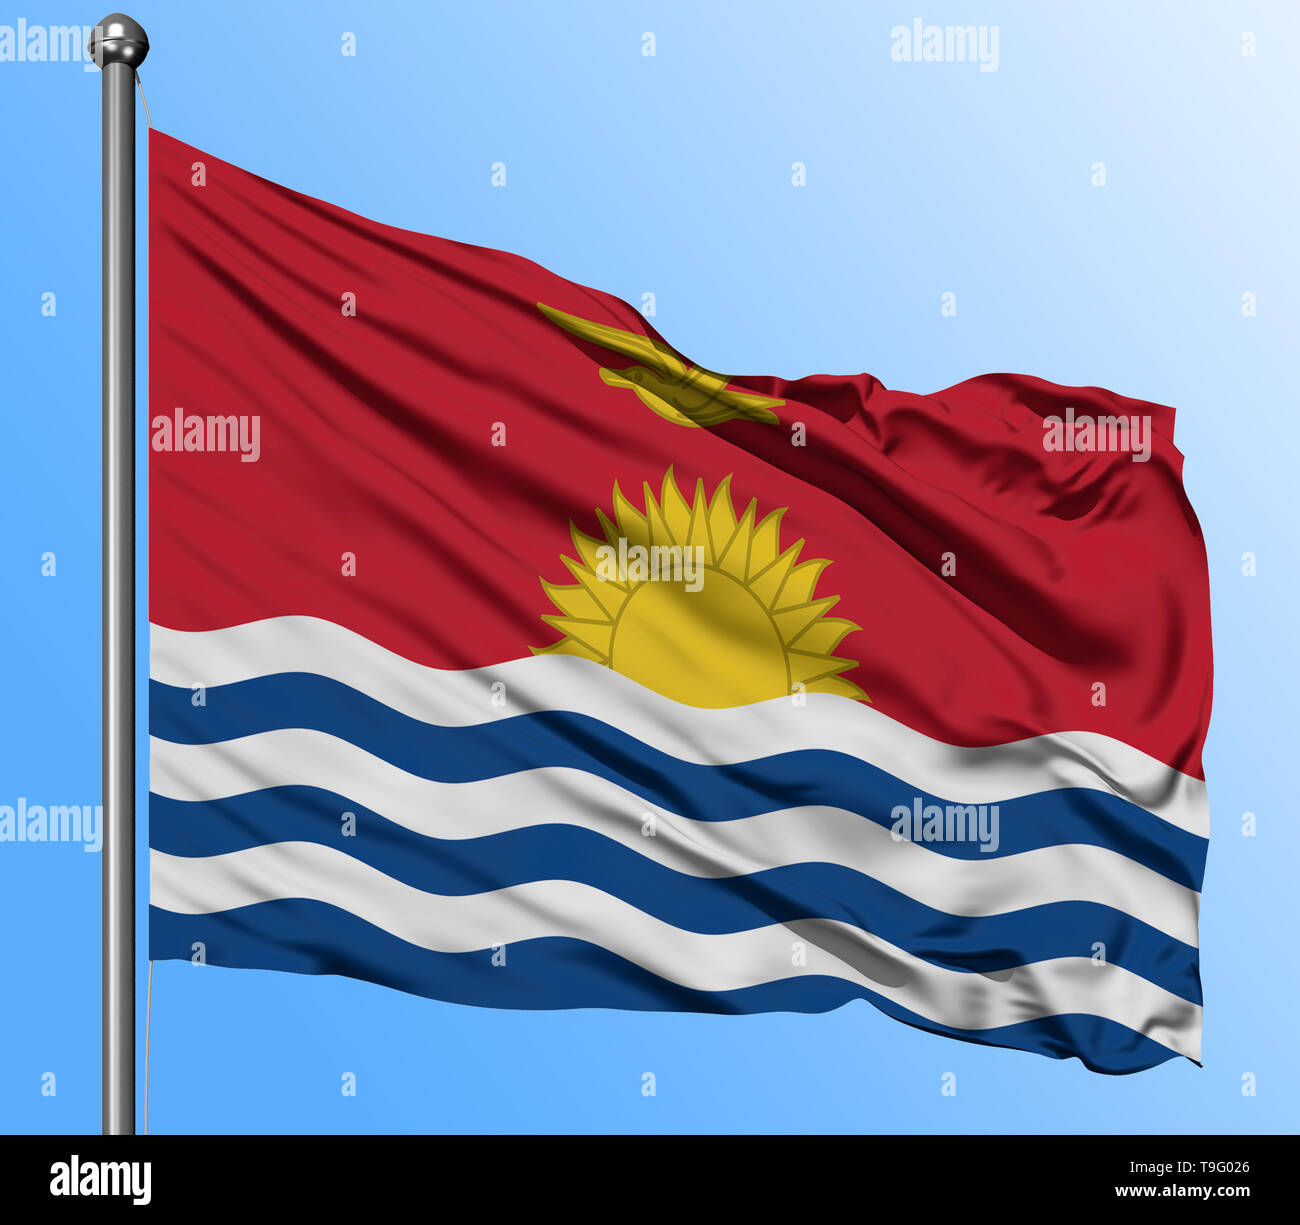 Kiribati flag waving in the deep blue sky background. Isolated national flag. Macro view shot. - Stock Image